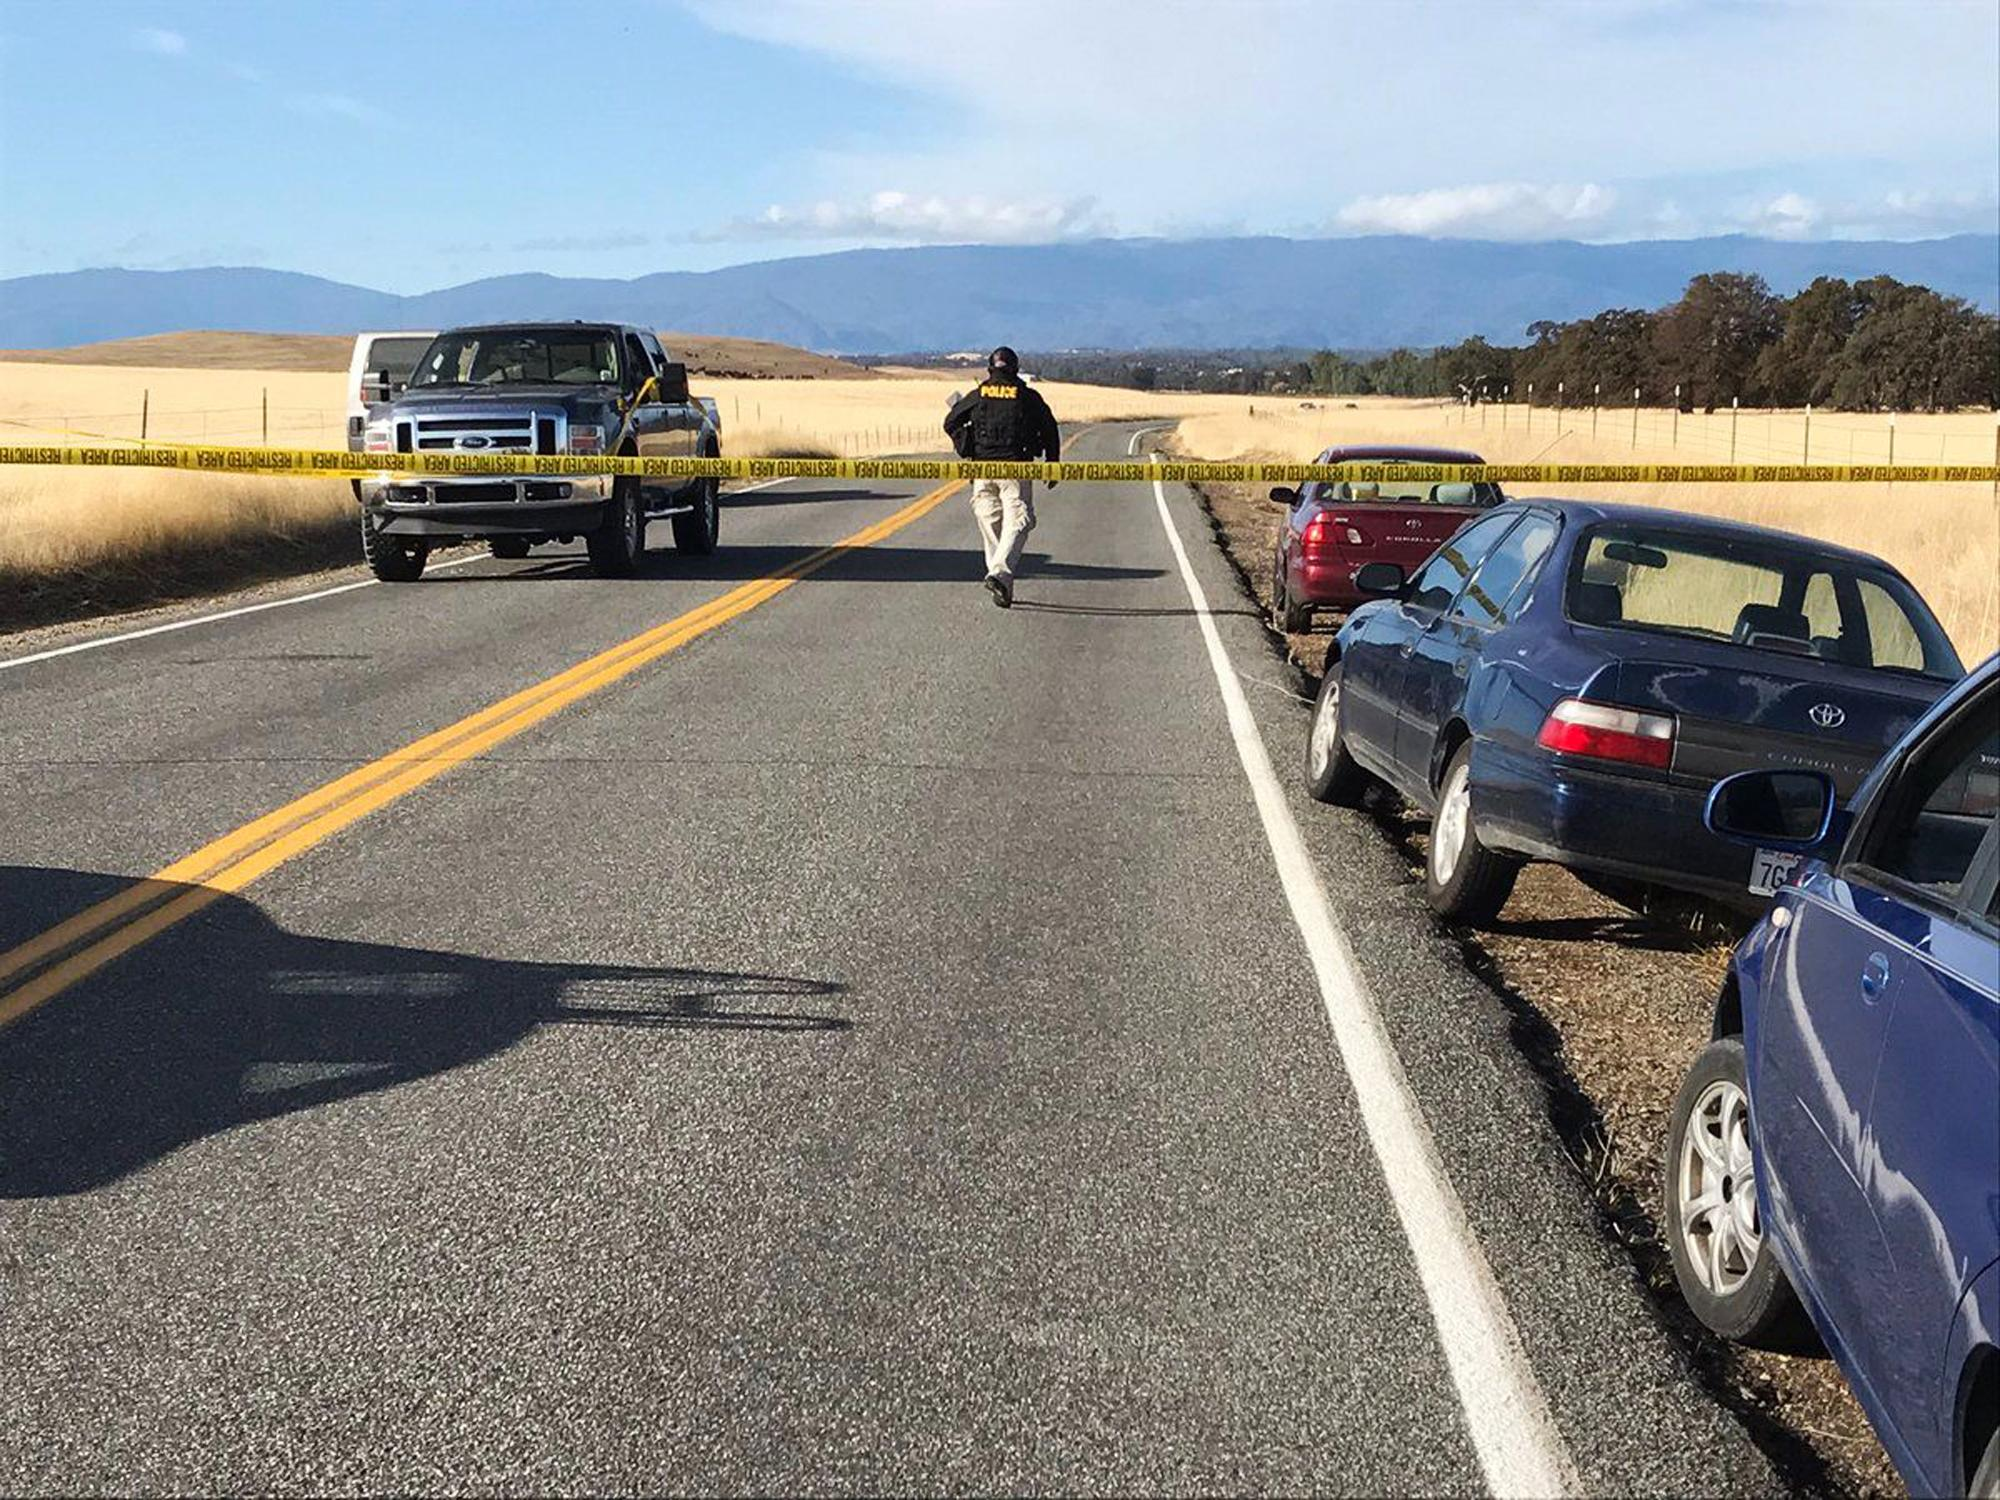 Crime tape blocks off Rancho Tehama Road leading into the Rancho Tehama subdivision south of Red Bluff, Calif., following a fatal shooting on Tuesday, Nov. 14, 2017. (Jim Schultz/The Record Searchlight via AP)